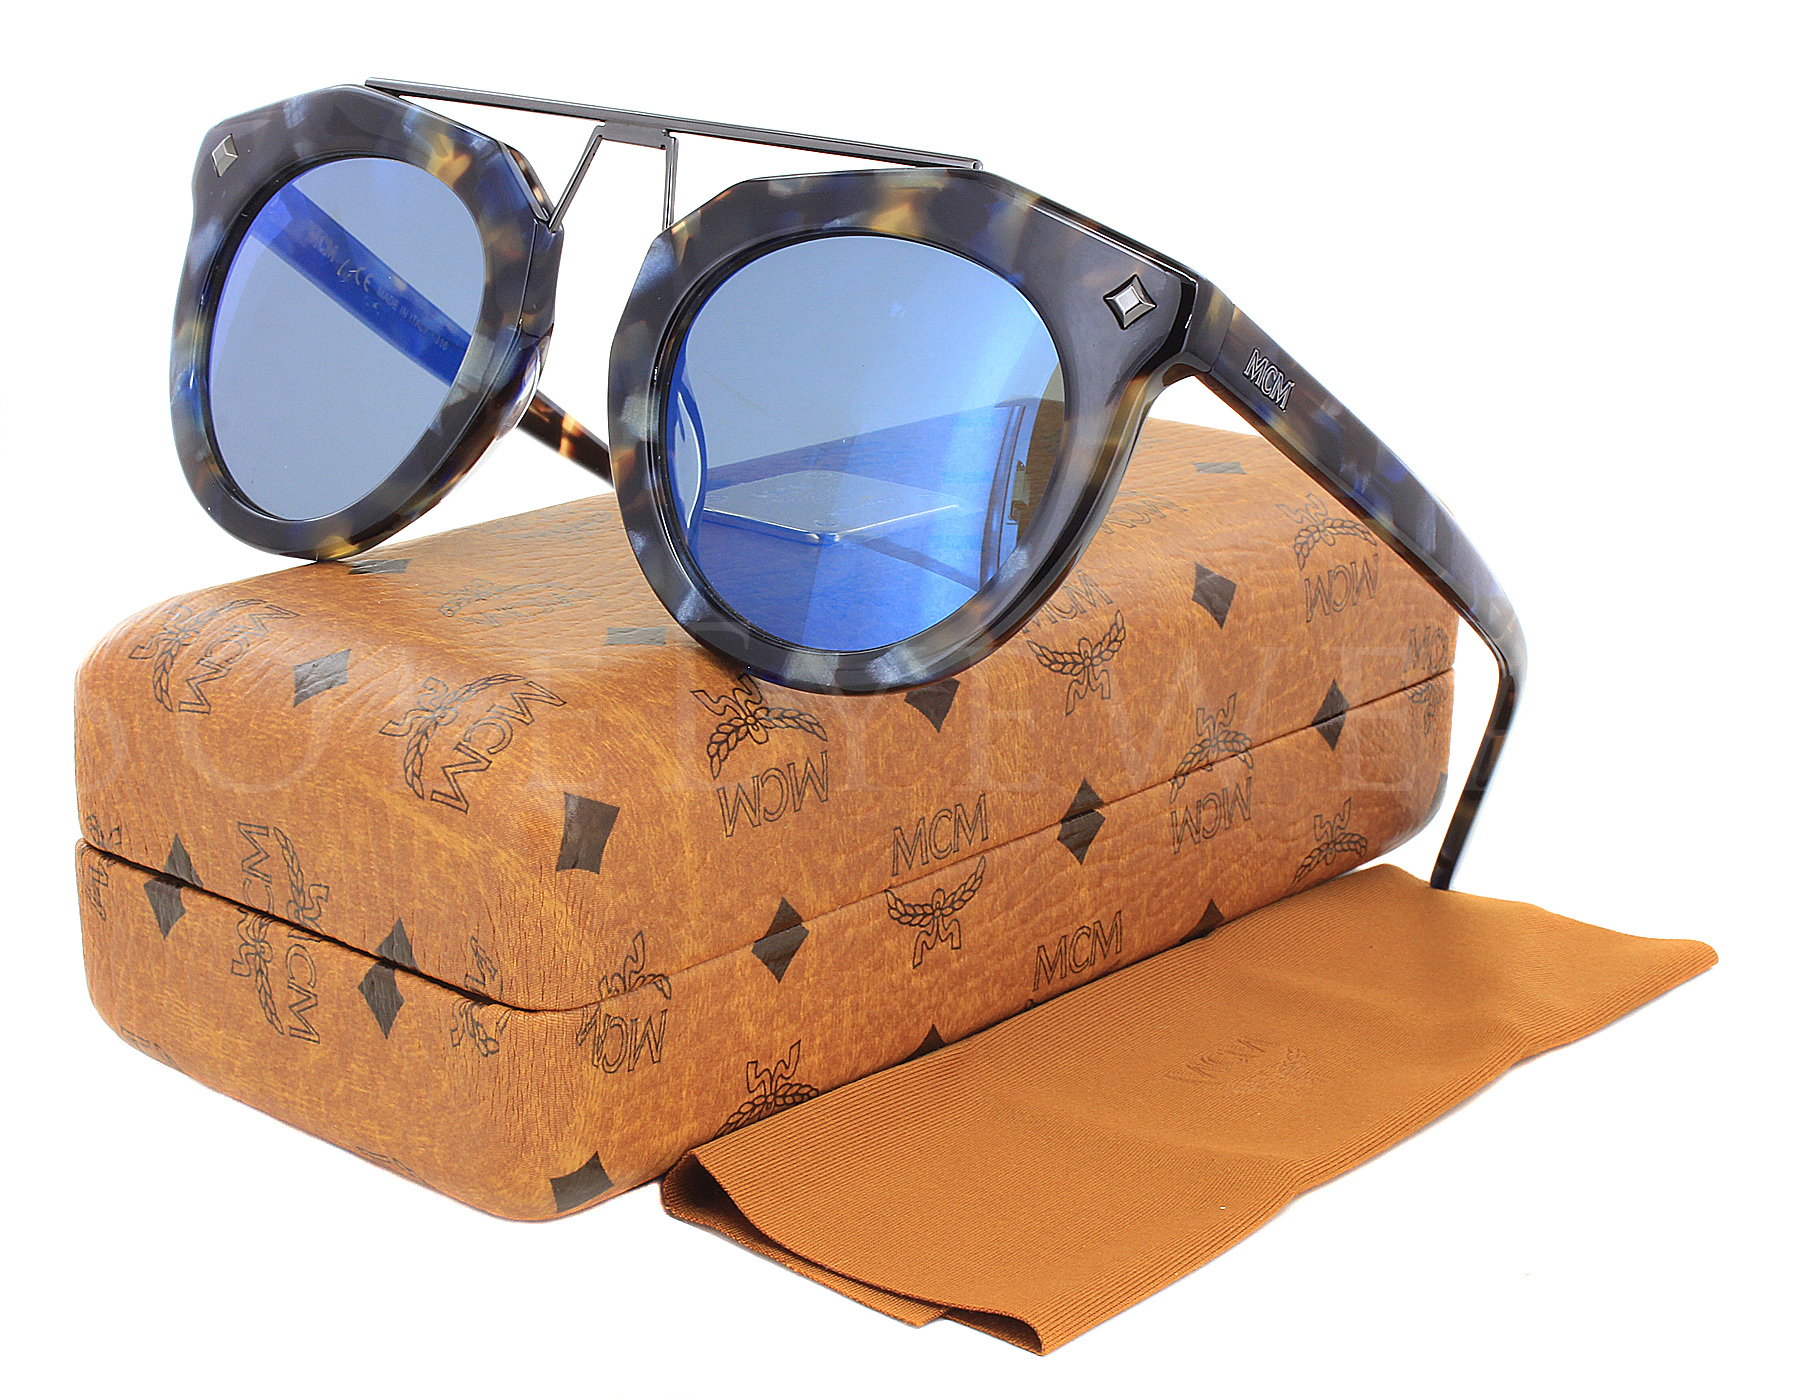 05832c902c6 Details about NEW MCM 636S 235 49mm Havana Blue   Blue Mirror Sunglasses